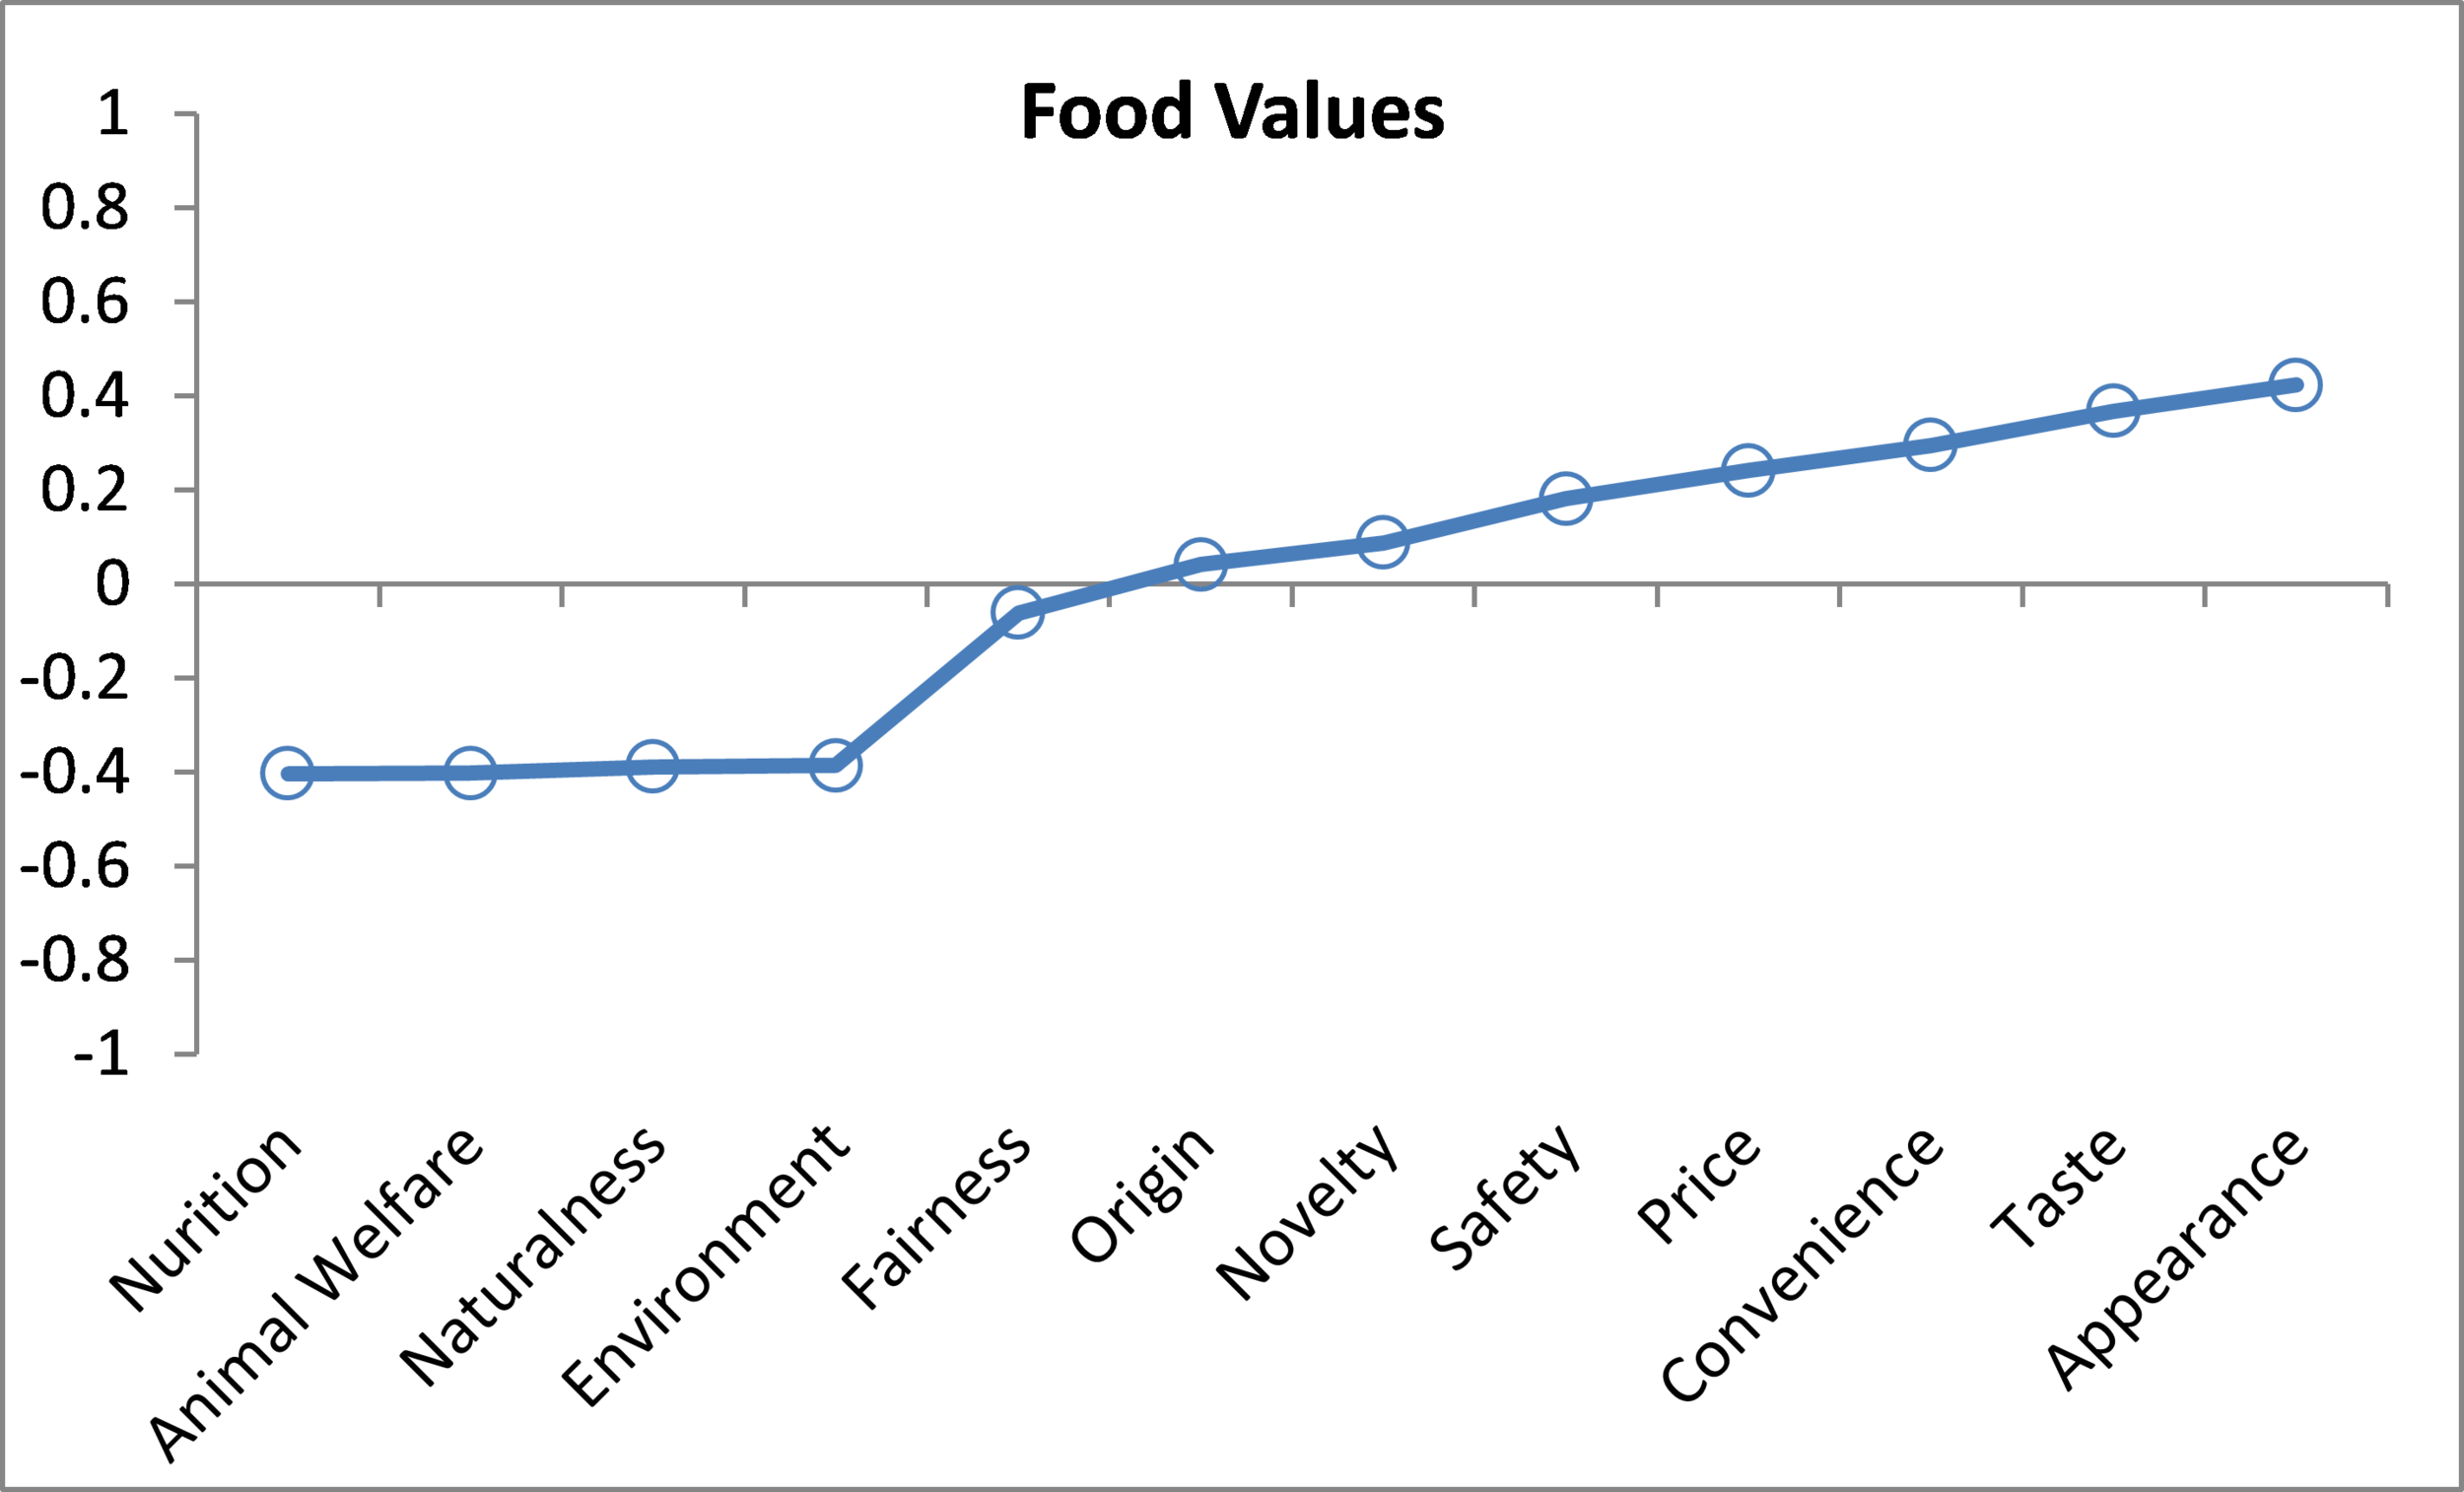 Relationship between food values and ground beef